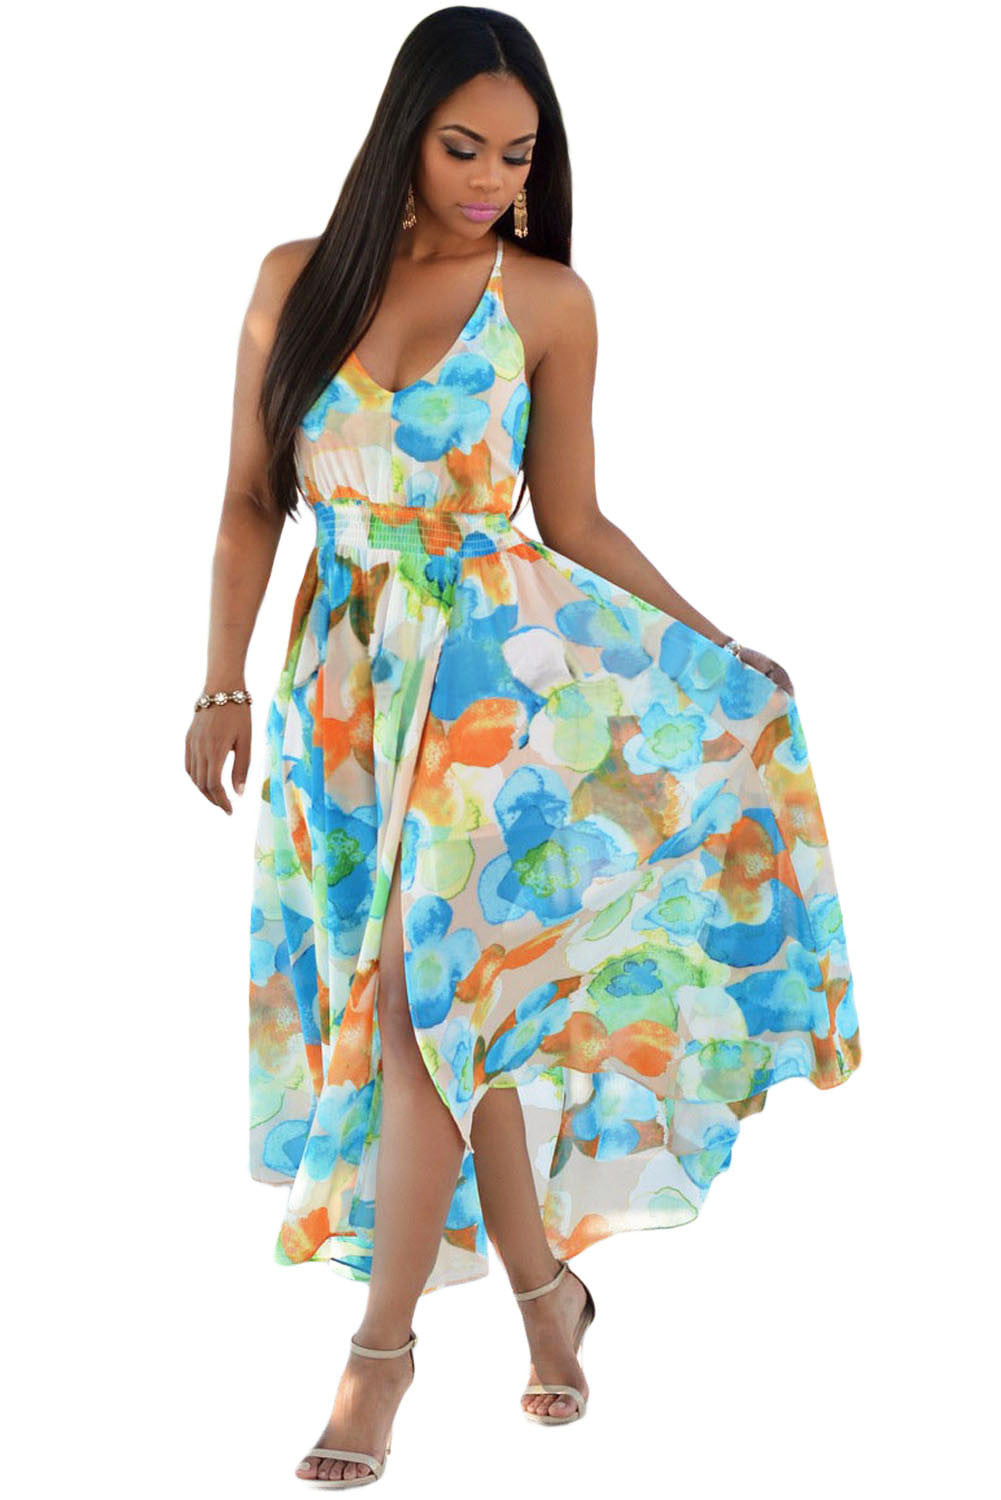 Tangerine Multi-Color Floral Paneled Dress - Jahnell's Closet